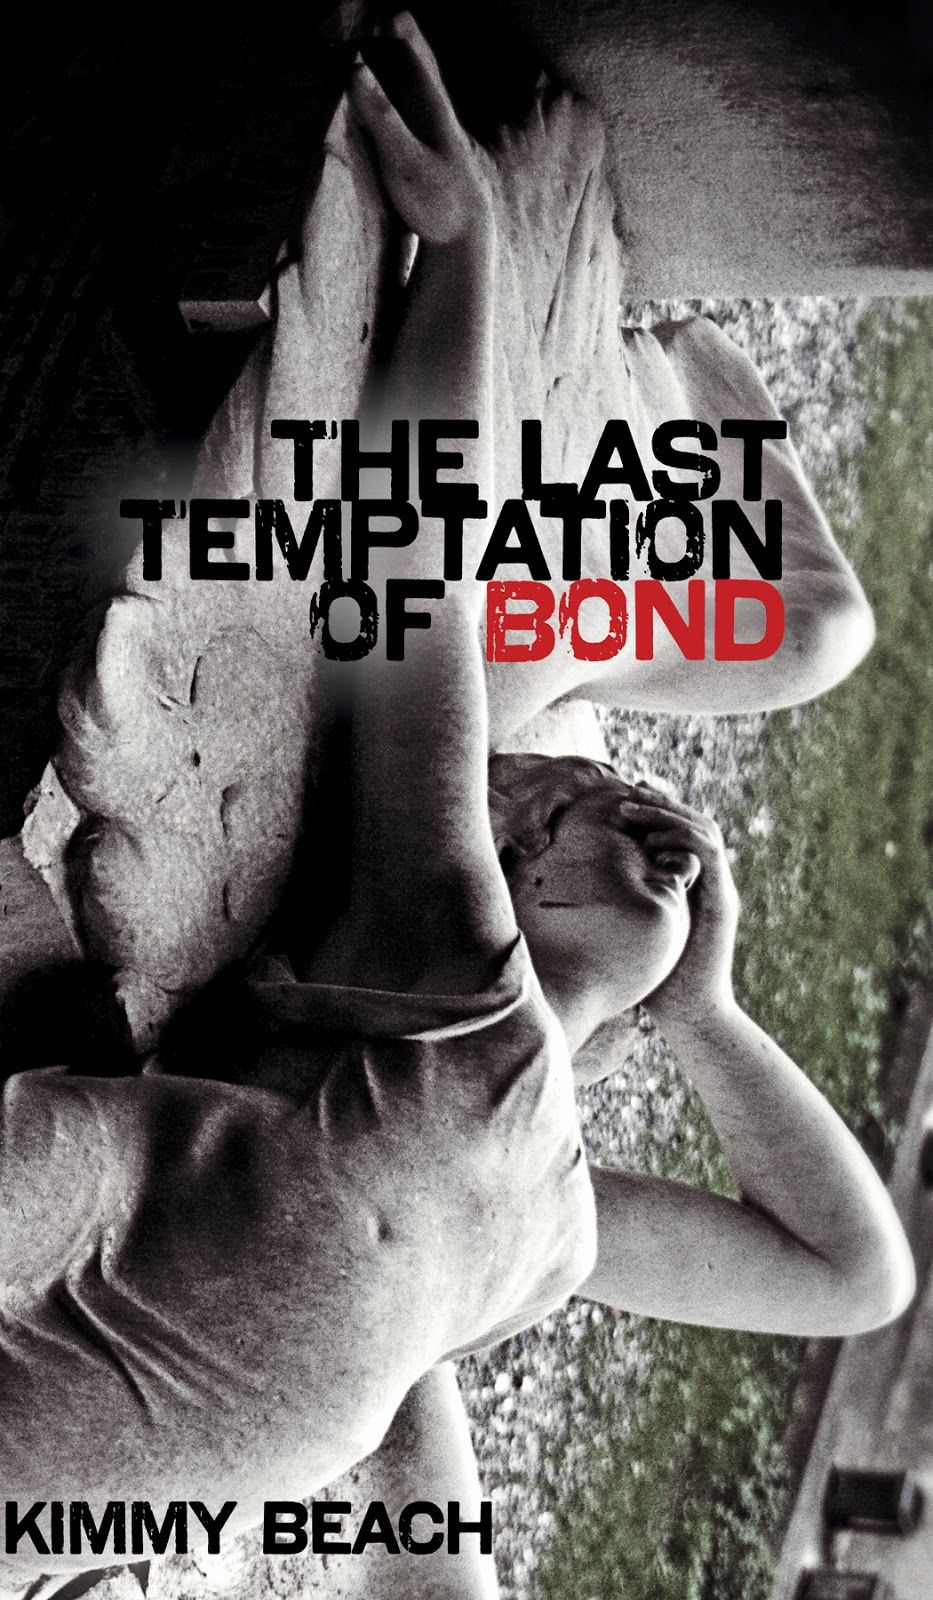 The Last Temptation of Bond by Kimmy Beach. A new 007 story written in Prose; in other words, a long poem about James Bond